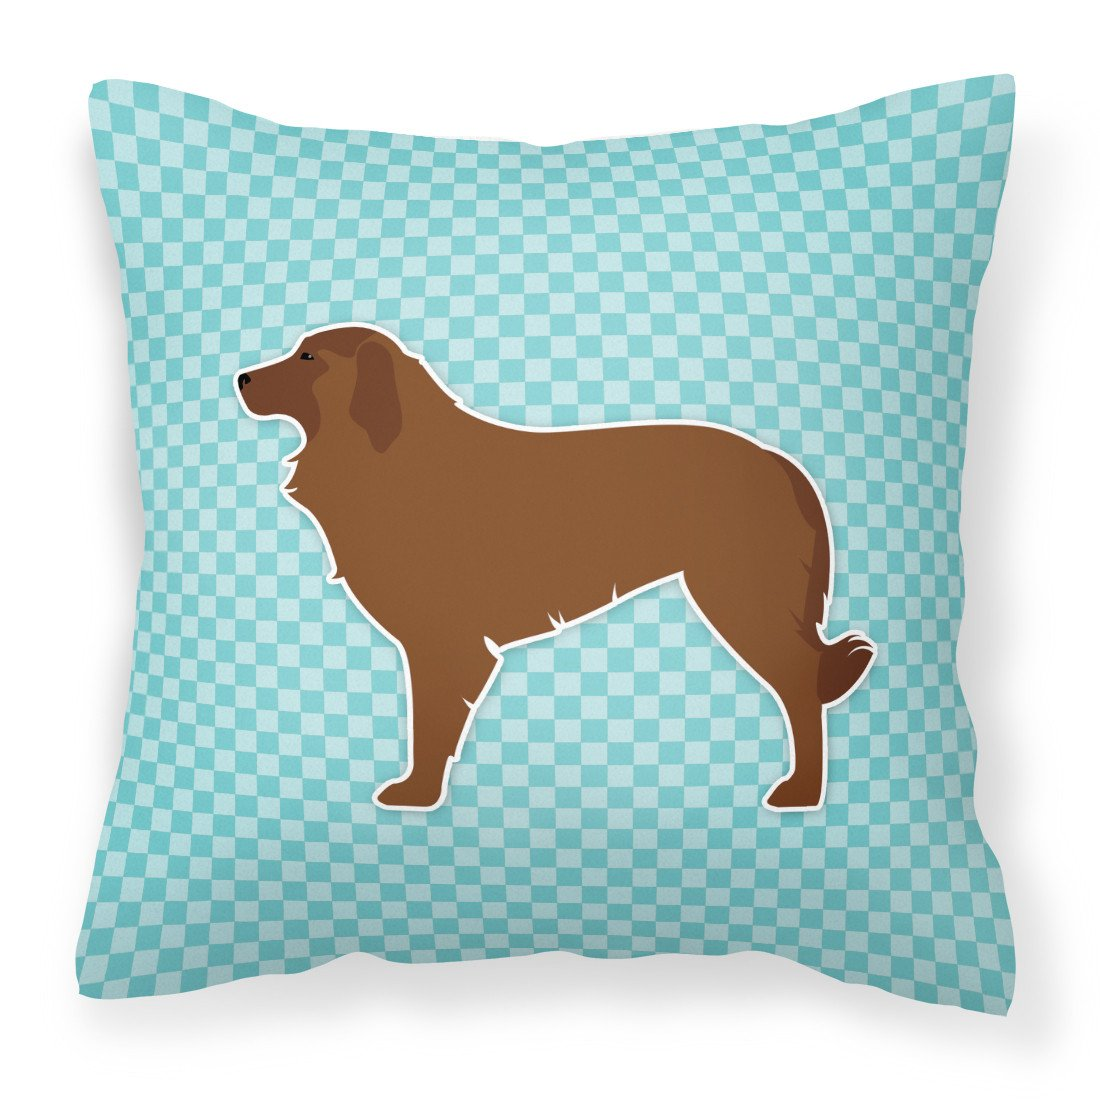 Portuguese Sheepdog Dog Checkerboard Blue Fabric Decorative Pillow BB3731PW1818 by Caroline's Treasures